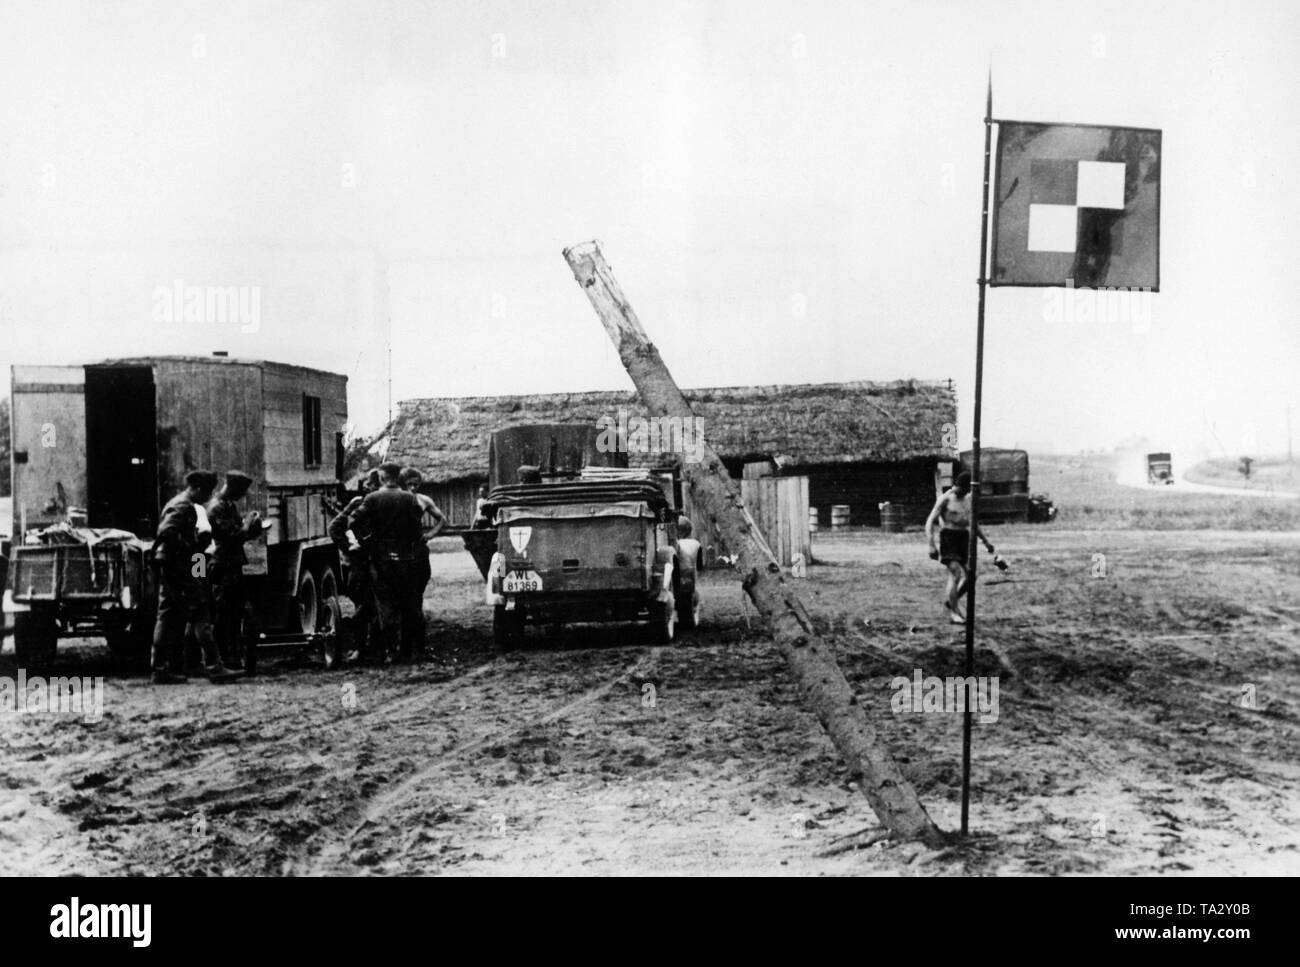 An Armeeoberkommando (Field Army Command) (AOK) of the Wehrmacht near Nirza in Latvia in a tent camp. At the VW Kuebelwagen ... Right, the flag of the AOK. Photo: war correspondent v. der Piepen. - Stock Image